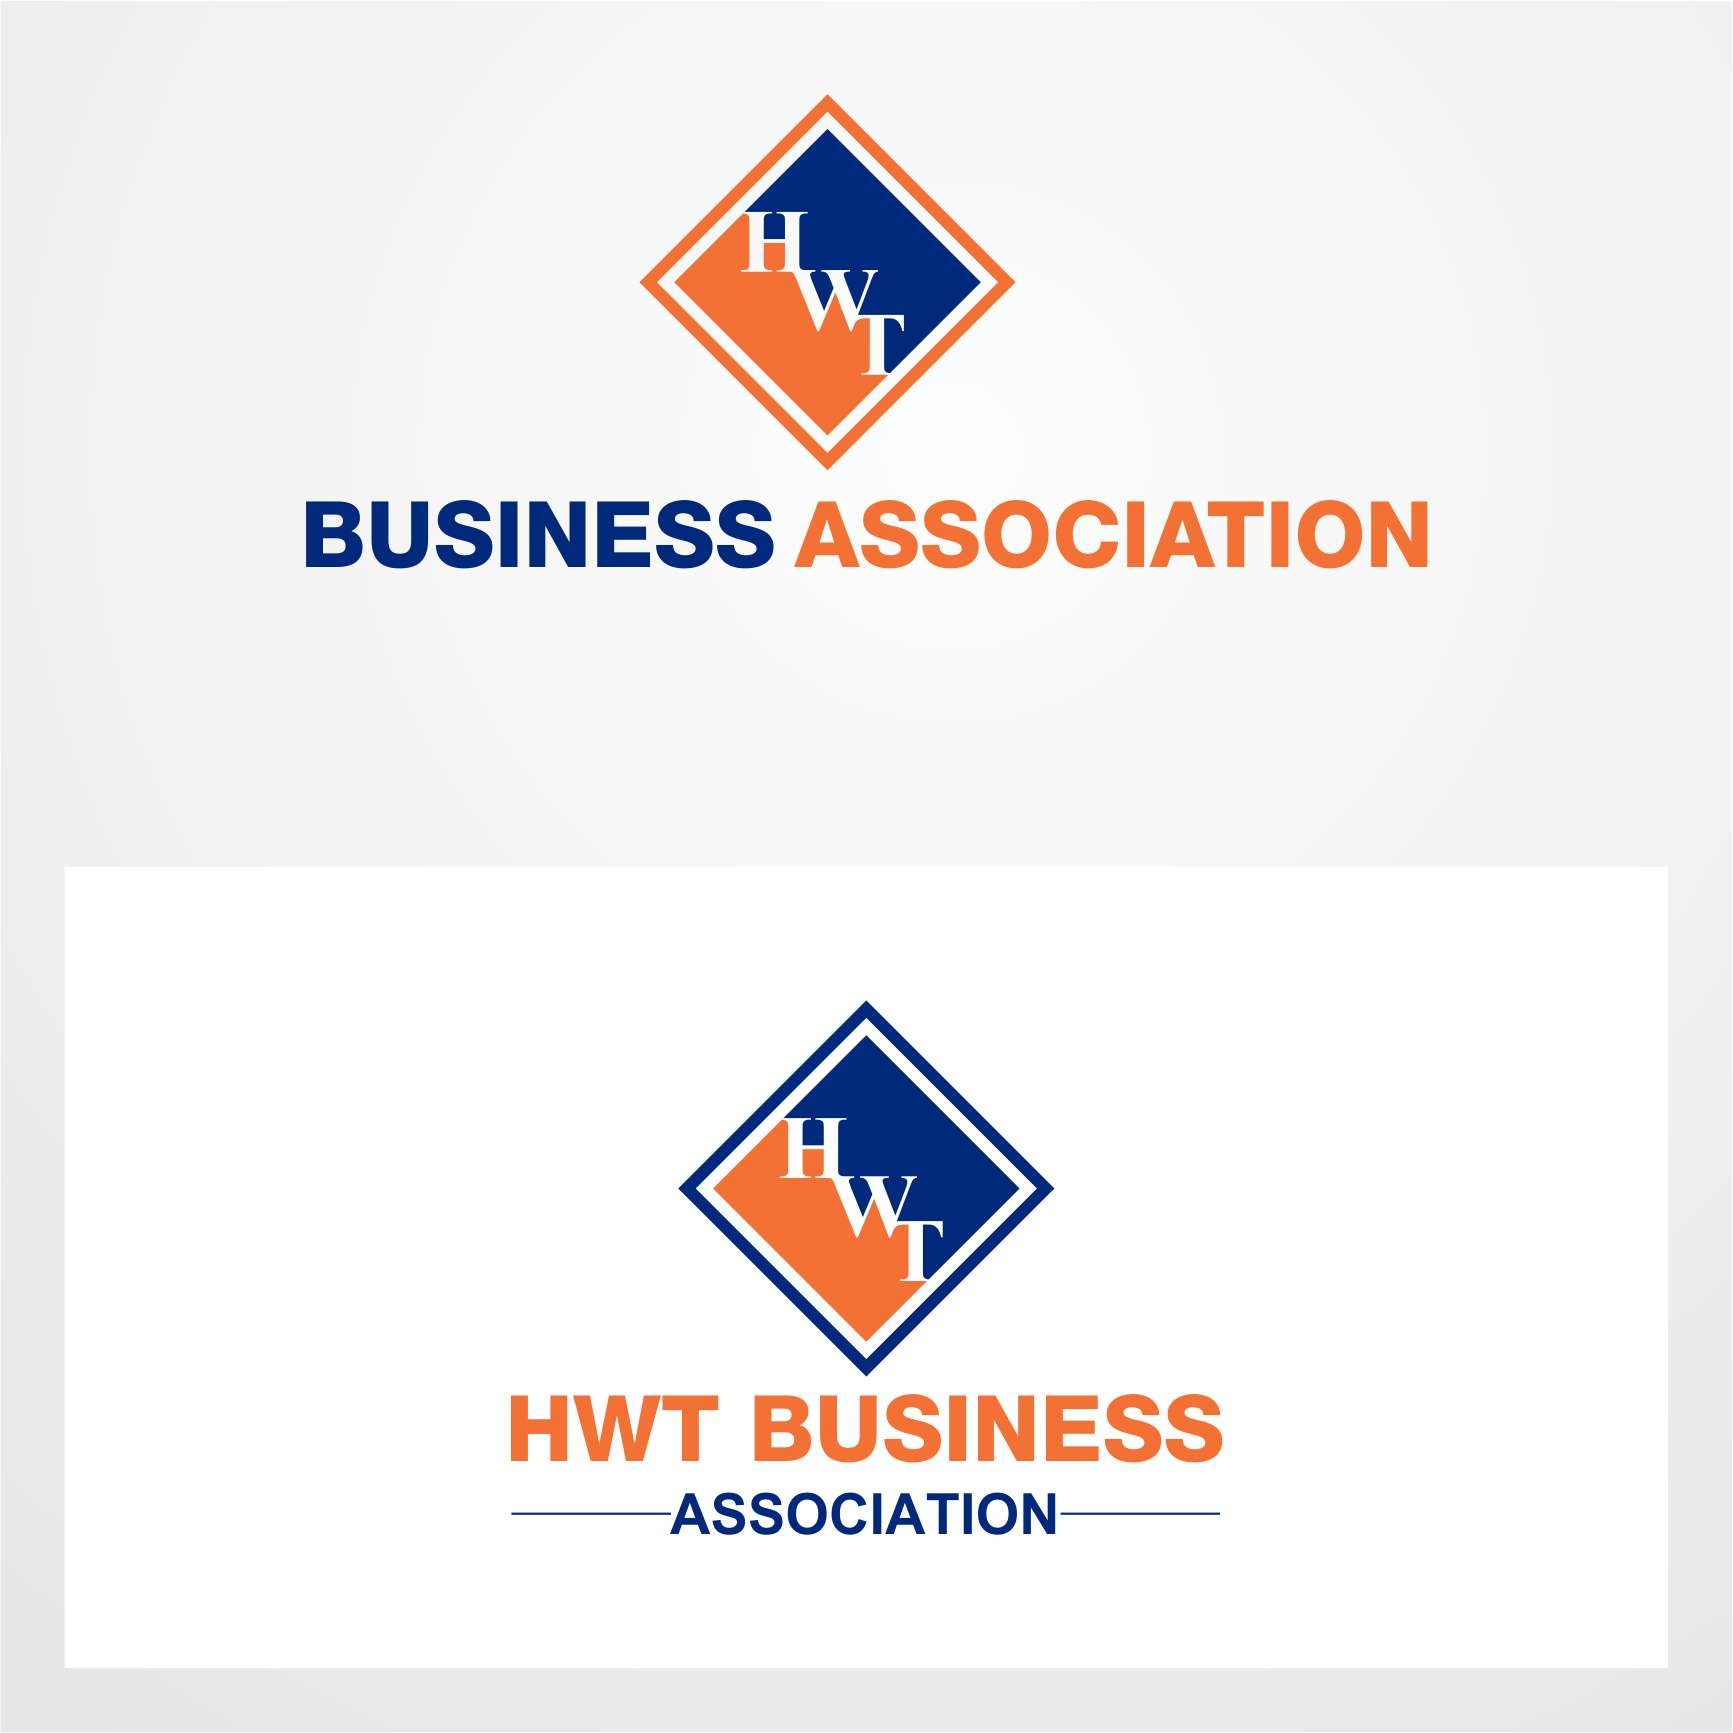 business association Take our survey take our survey and help us assess the needs of our business community and association it's important for us to hear your thoughts in order to.